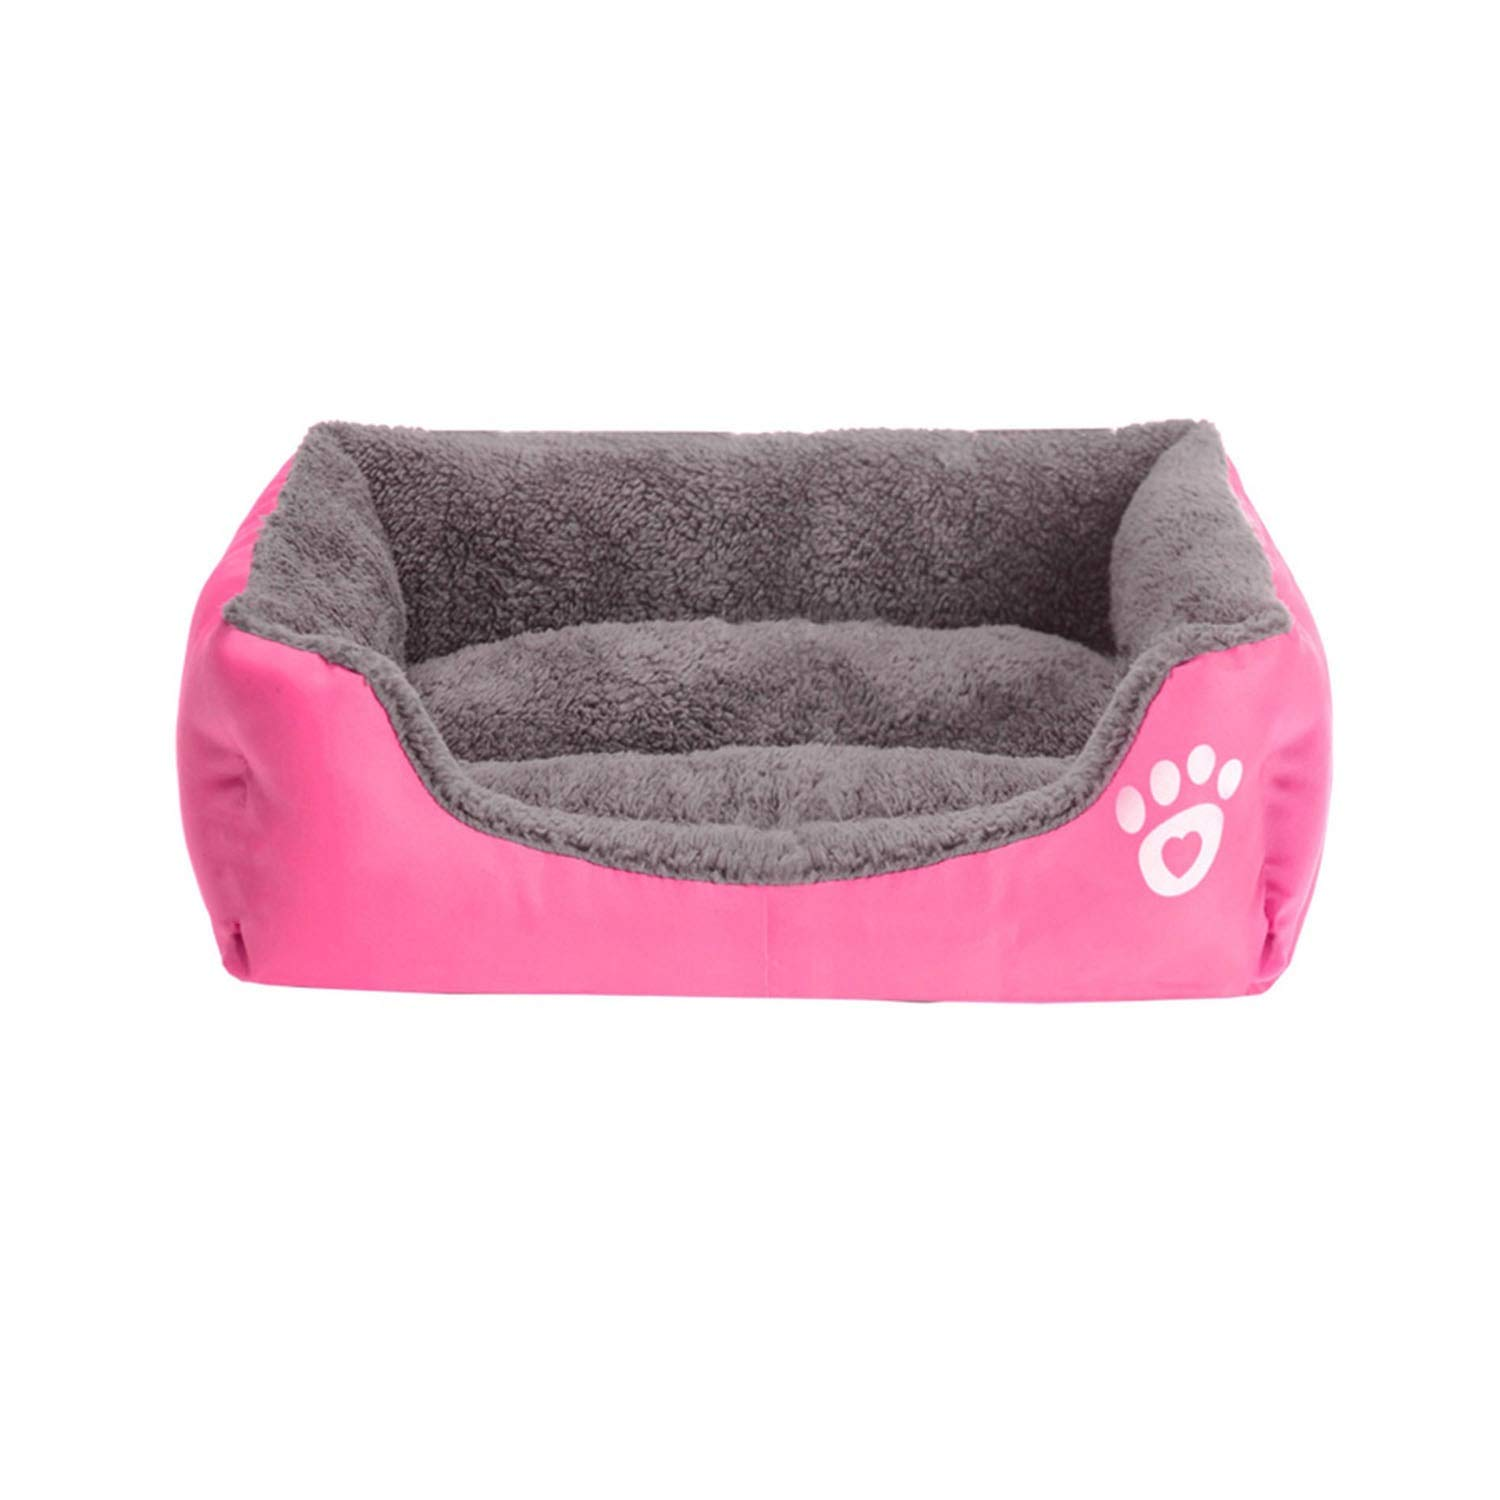 Amazon.com : Wateroof Bottom Soft Fleece Warm Cat Bed House ...